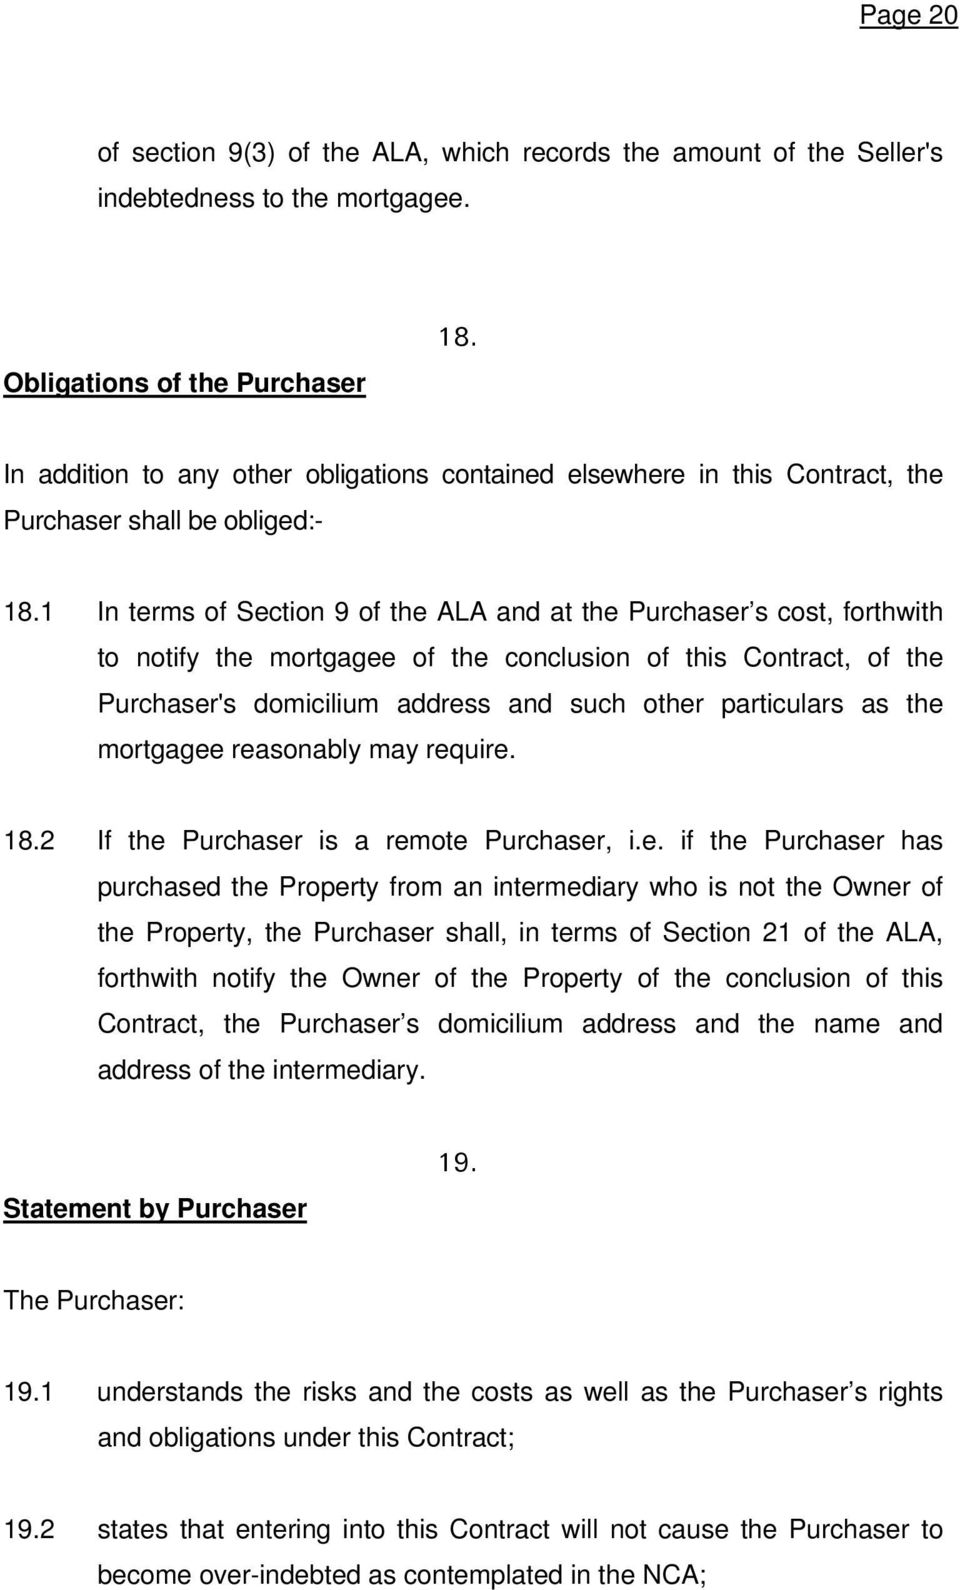 1 In terms of Section 9 of the ALA and at the Purchaser s cost, forthwith to notify the mortgagee of the conclusion of this Contract, of the Purchaser's domicilium address and such other particulars